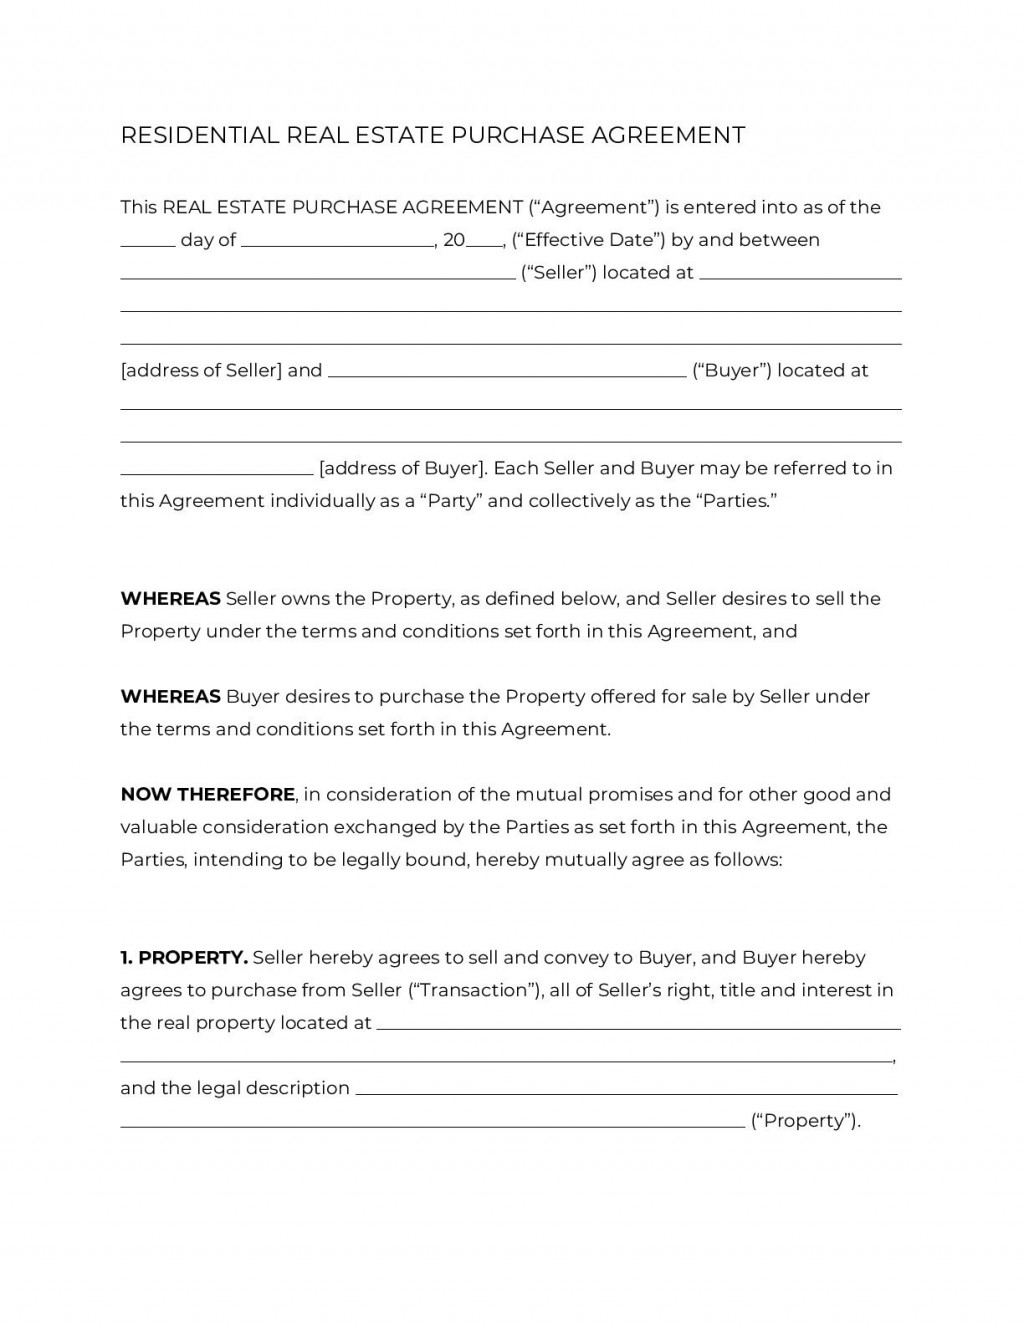 007 Outstanding Real Estate Purchase Contract California Picture  Commercial Agreement PdfLarge